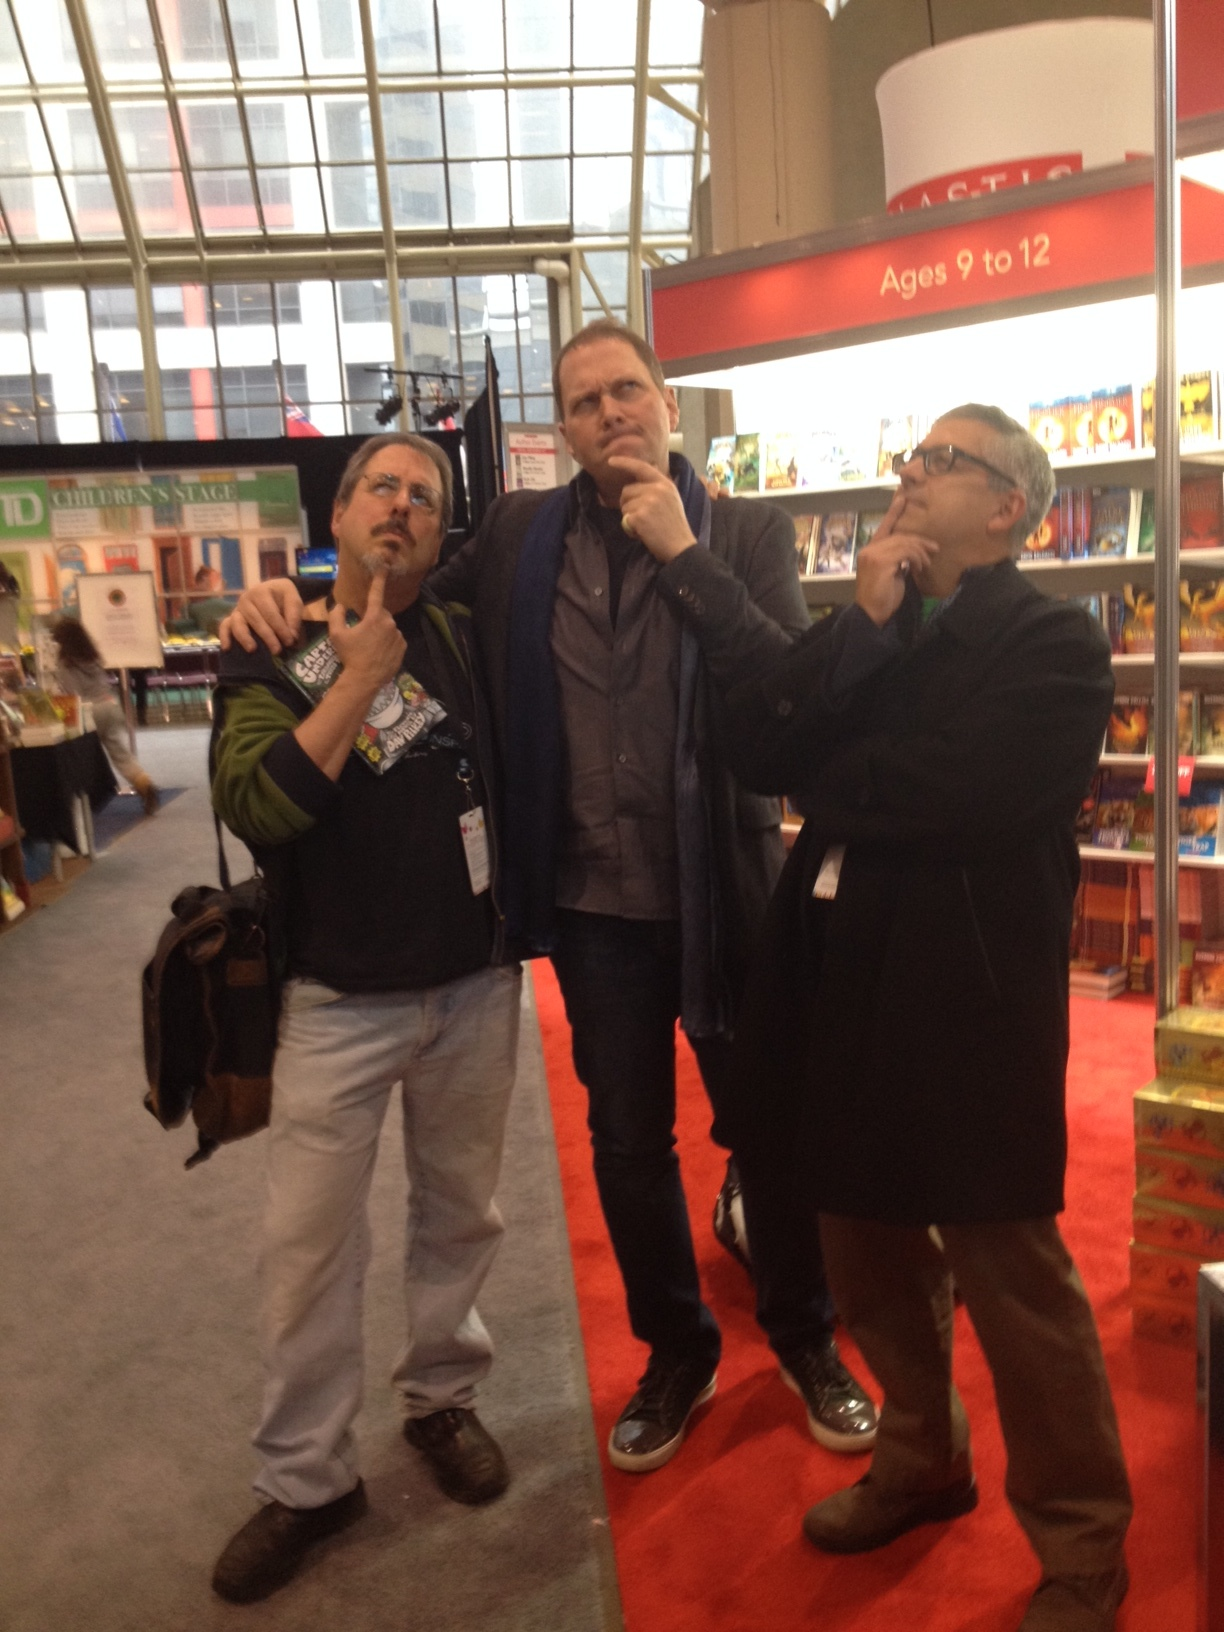 Me and my pals Dav Pilkey and Alan Silberberg. (TIP: Stand in front when they take the pic. You'll look taller!)